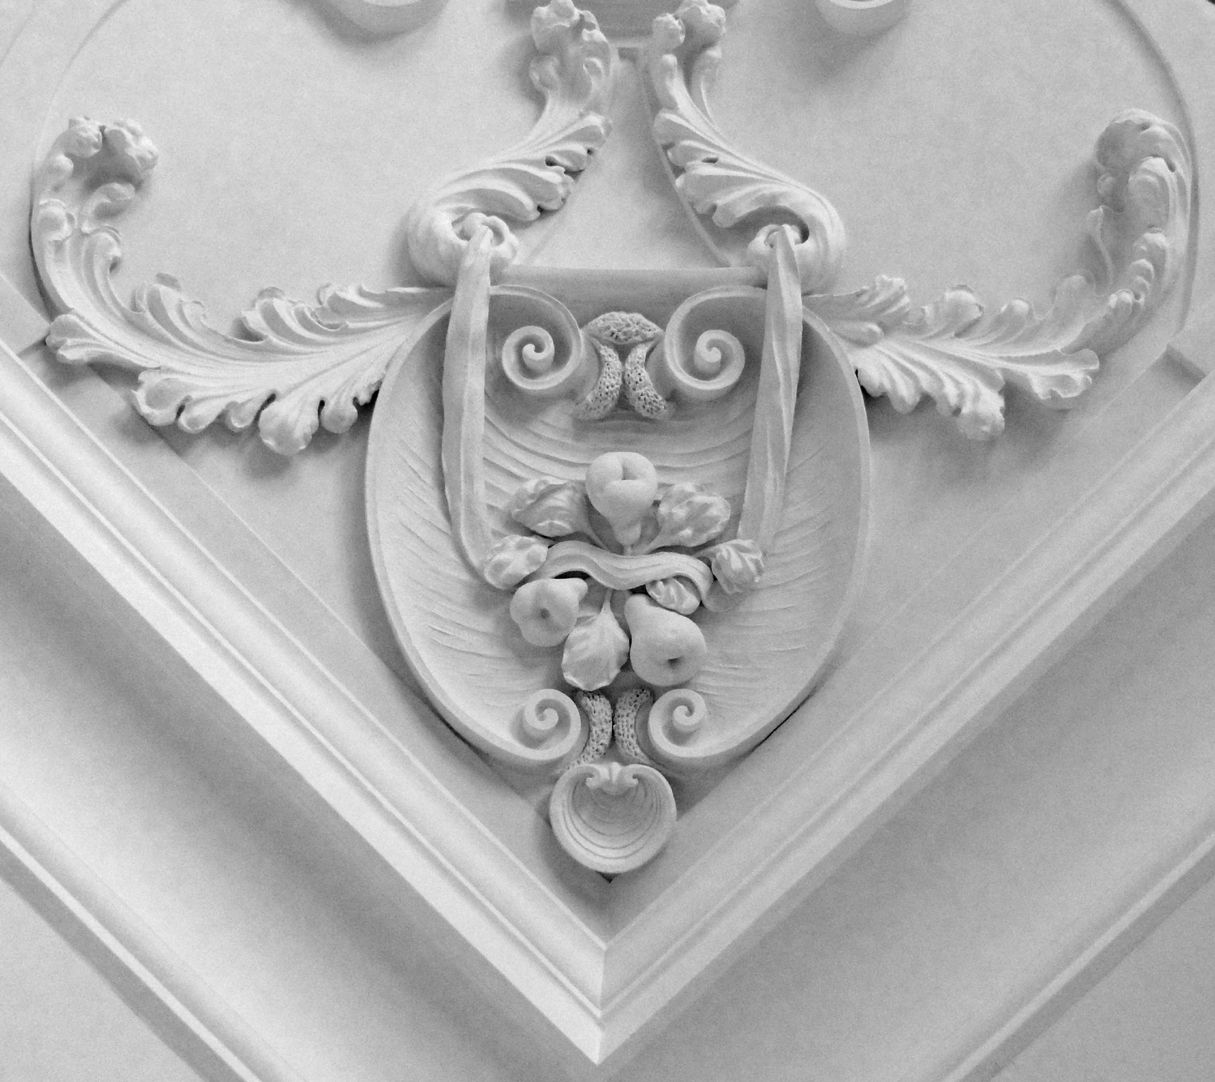 Stucco ceiling from the garden hall of the former Merkel estate Detail of the south west part of the ceiling